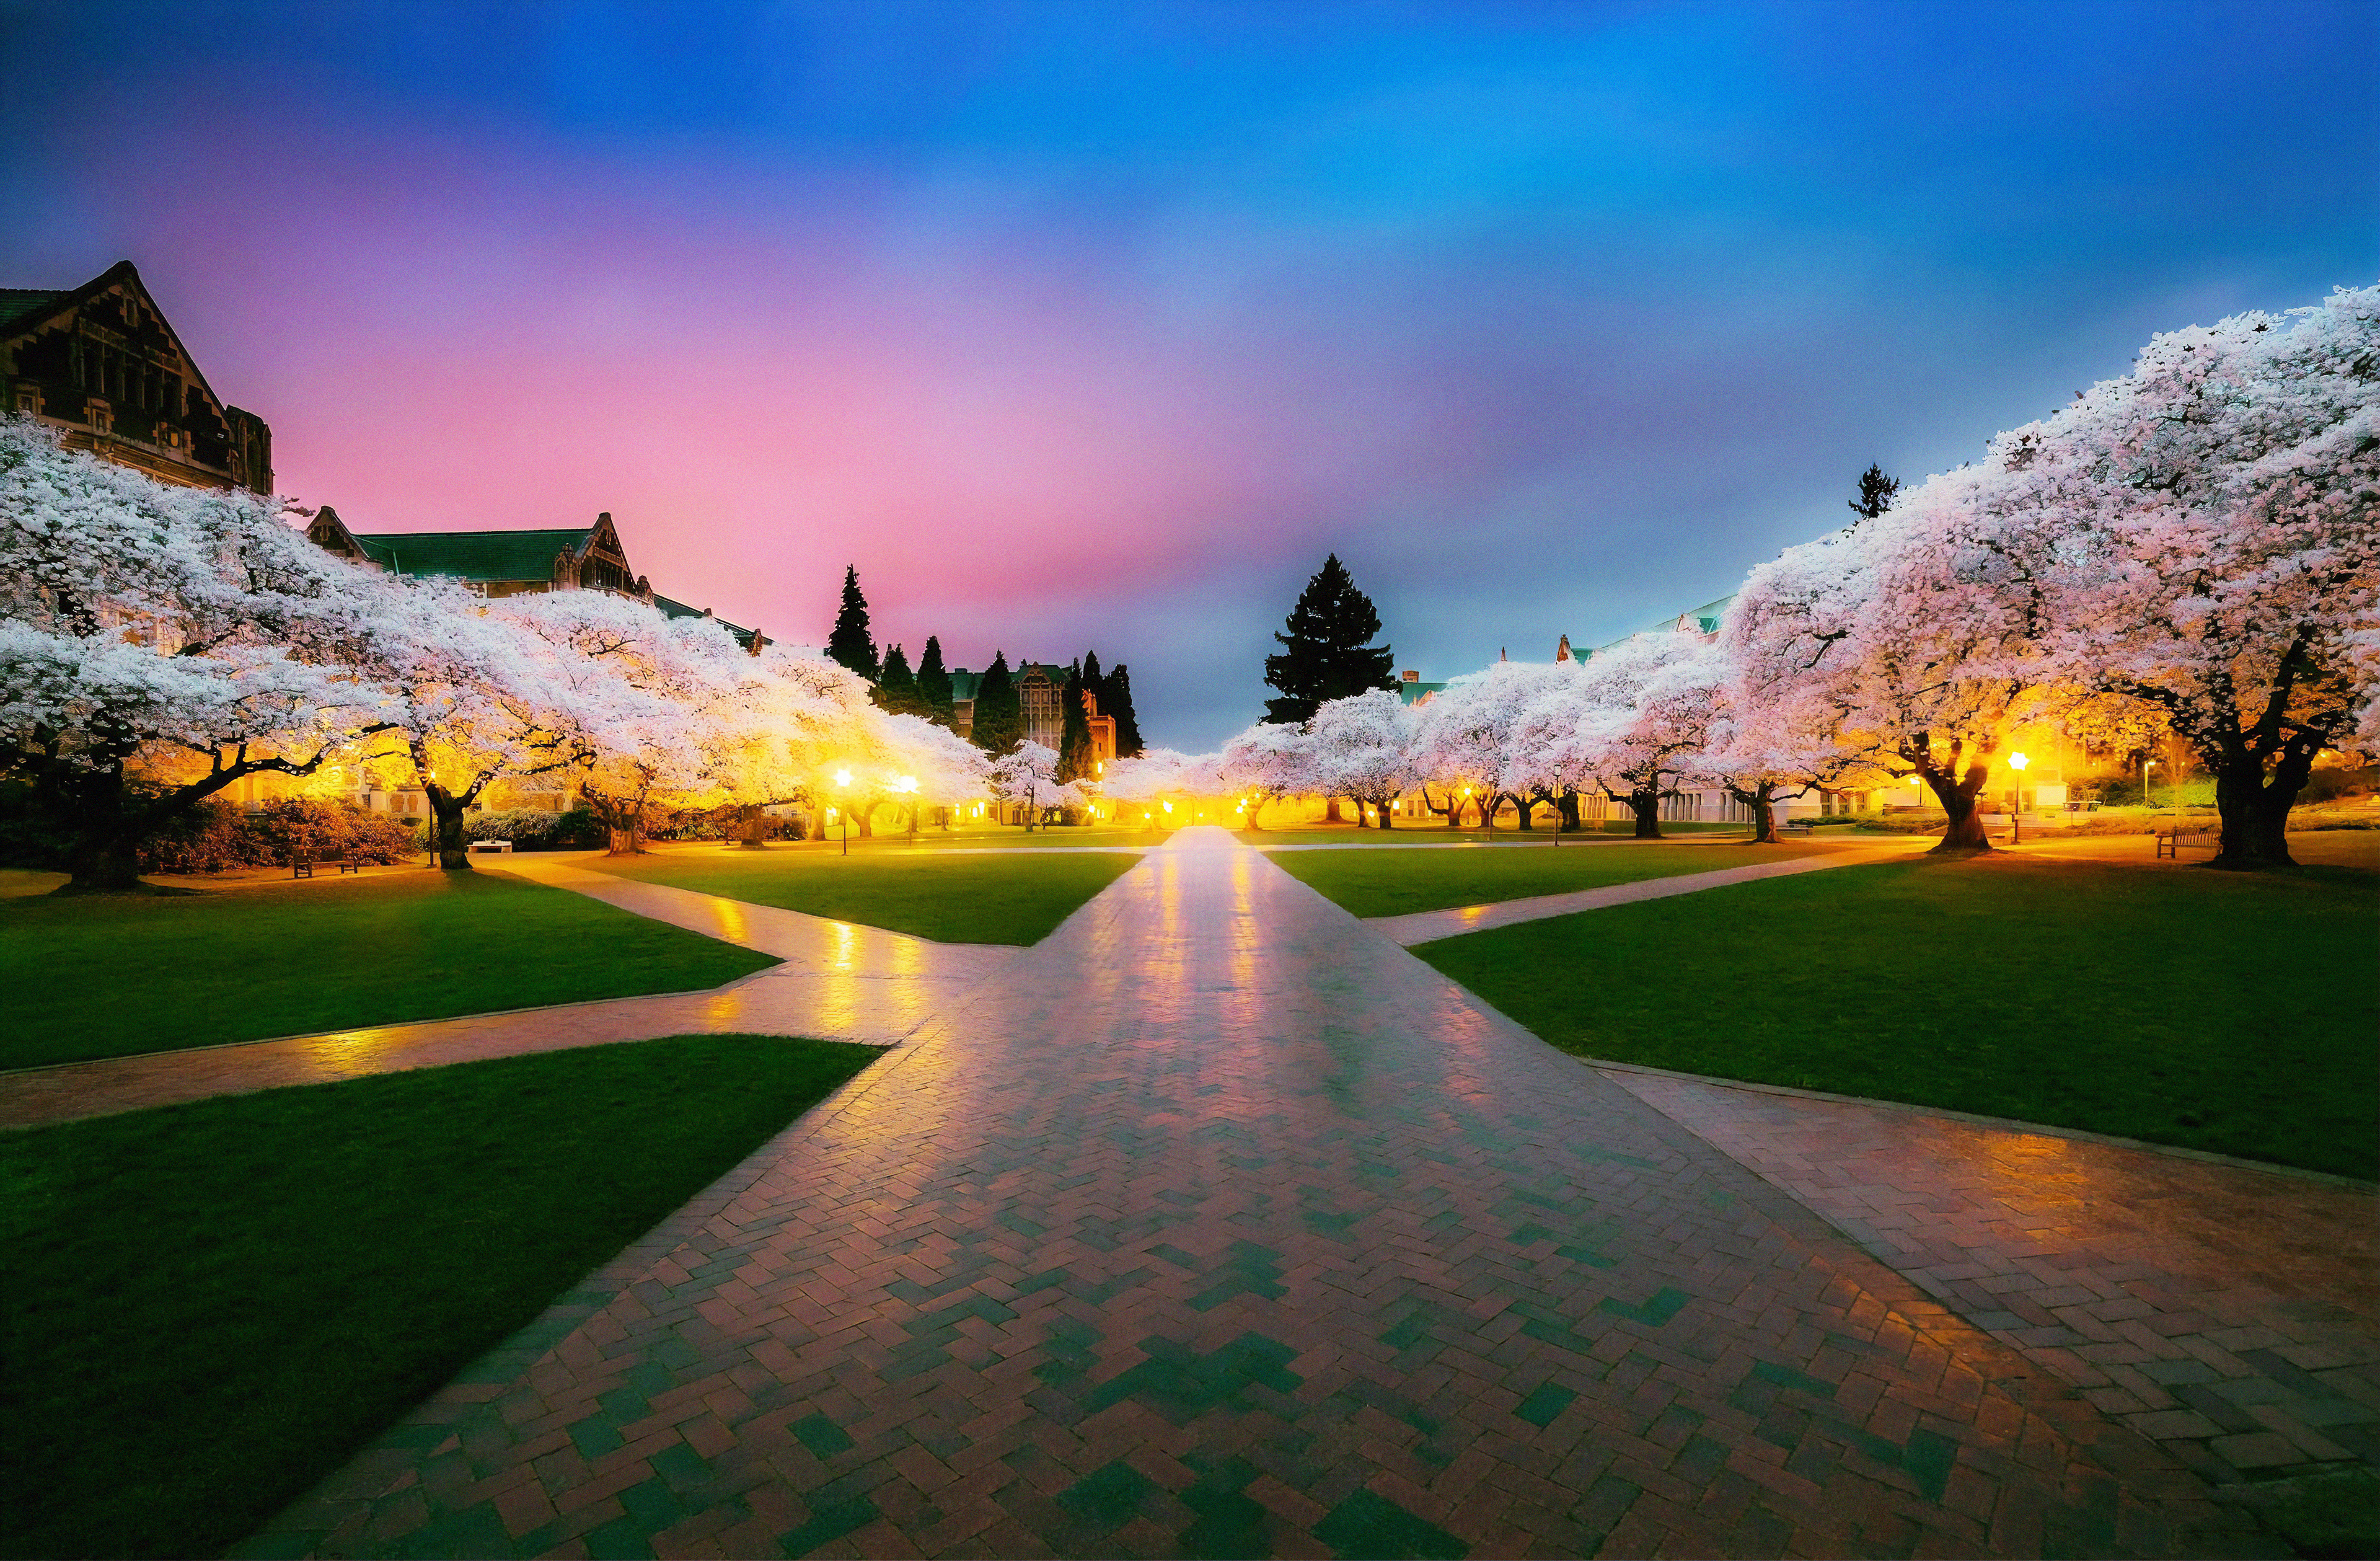 1366x768 Cherry Blossom Tree Park 4k 1366x768 Resolution Hd 4k Wallpapers Images Backgrounds Photos And Pictures